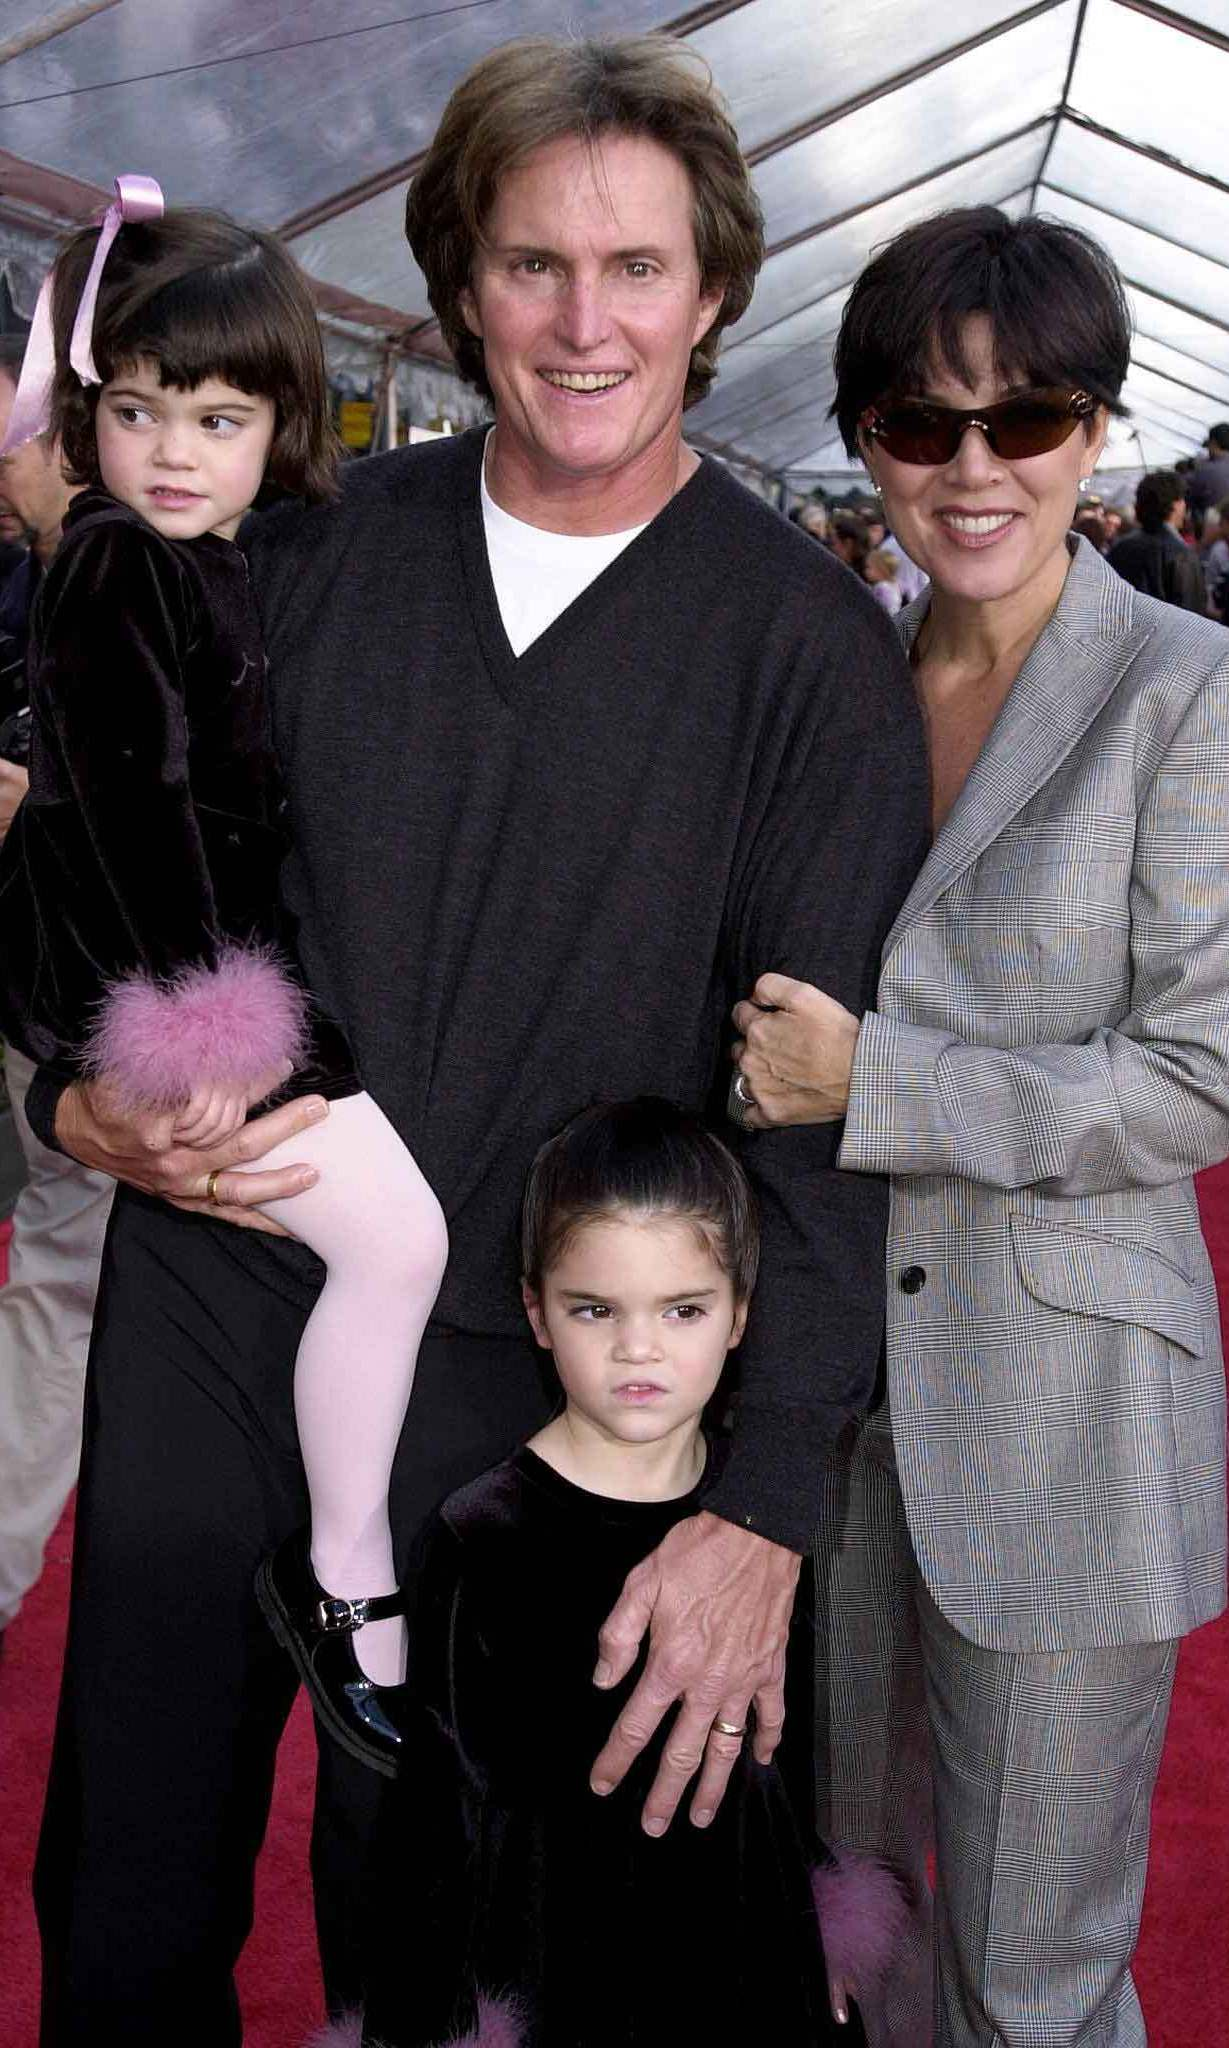 Little Kylie was as cute as a button on the red carpet with her family in 2000.